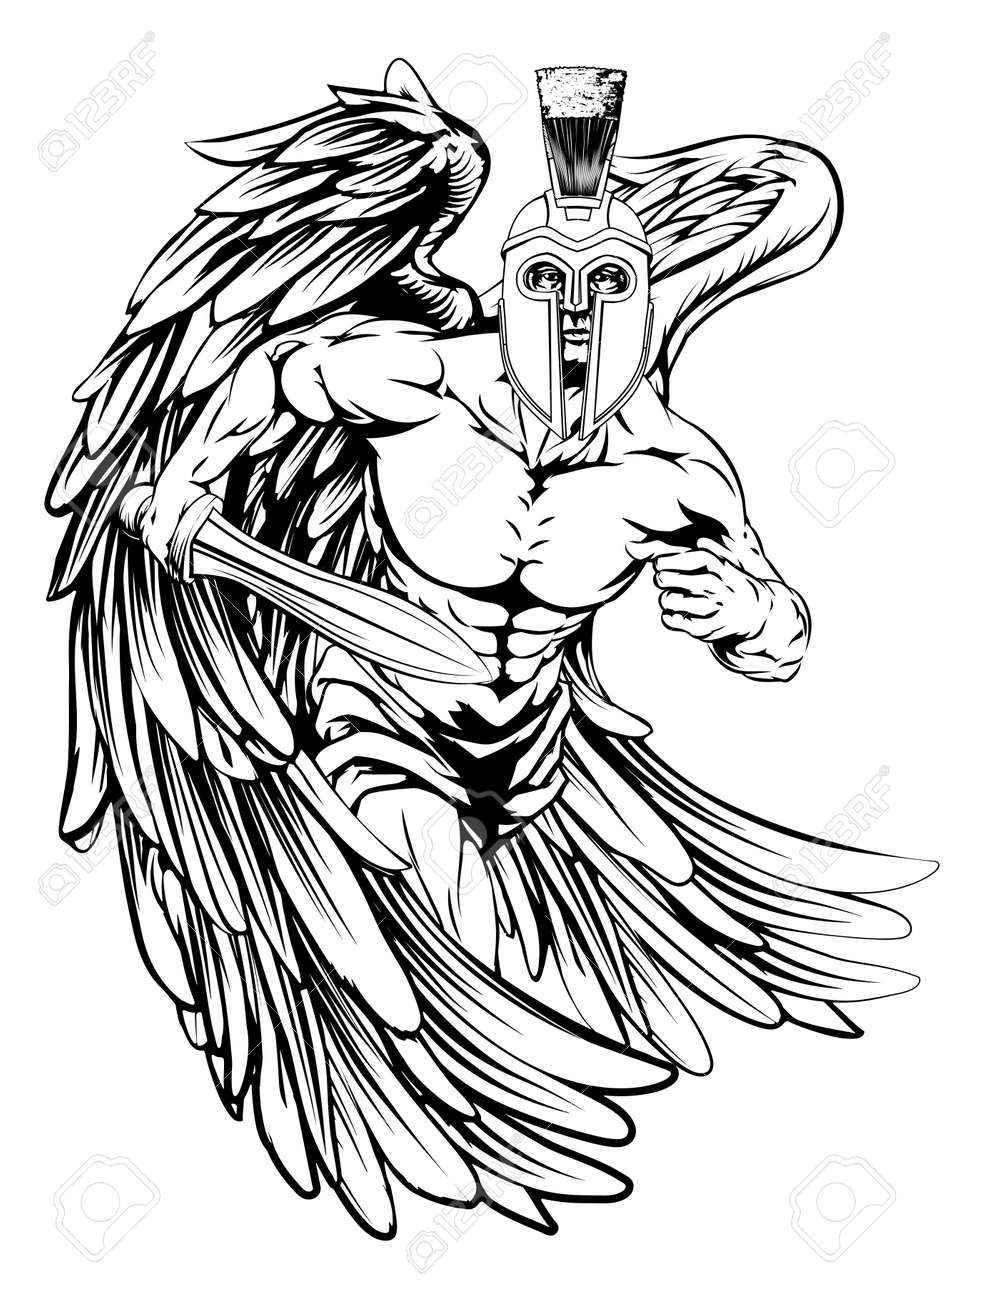 427 angel warrior stock vector illustration and royalty free angel